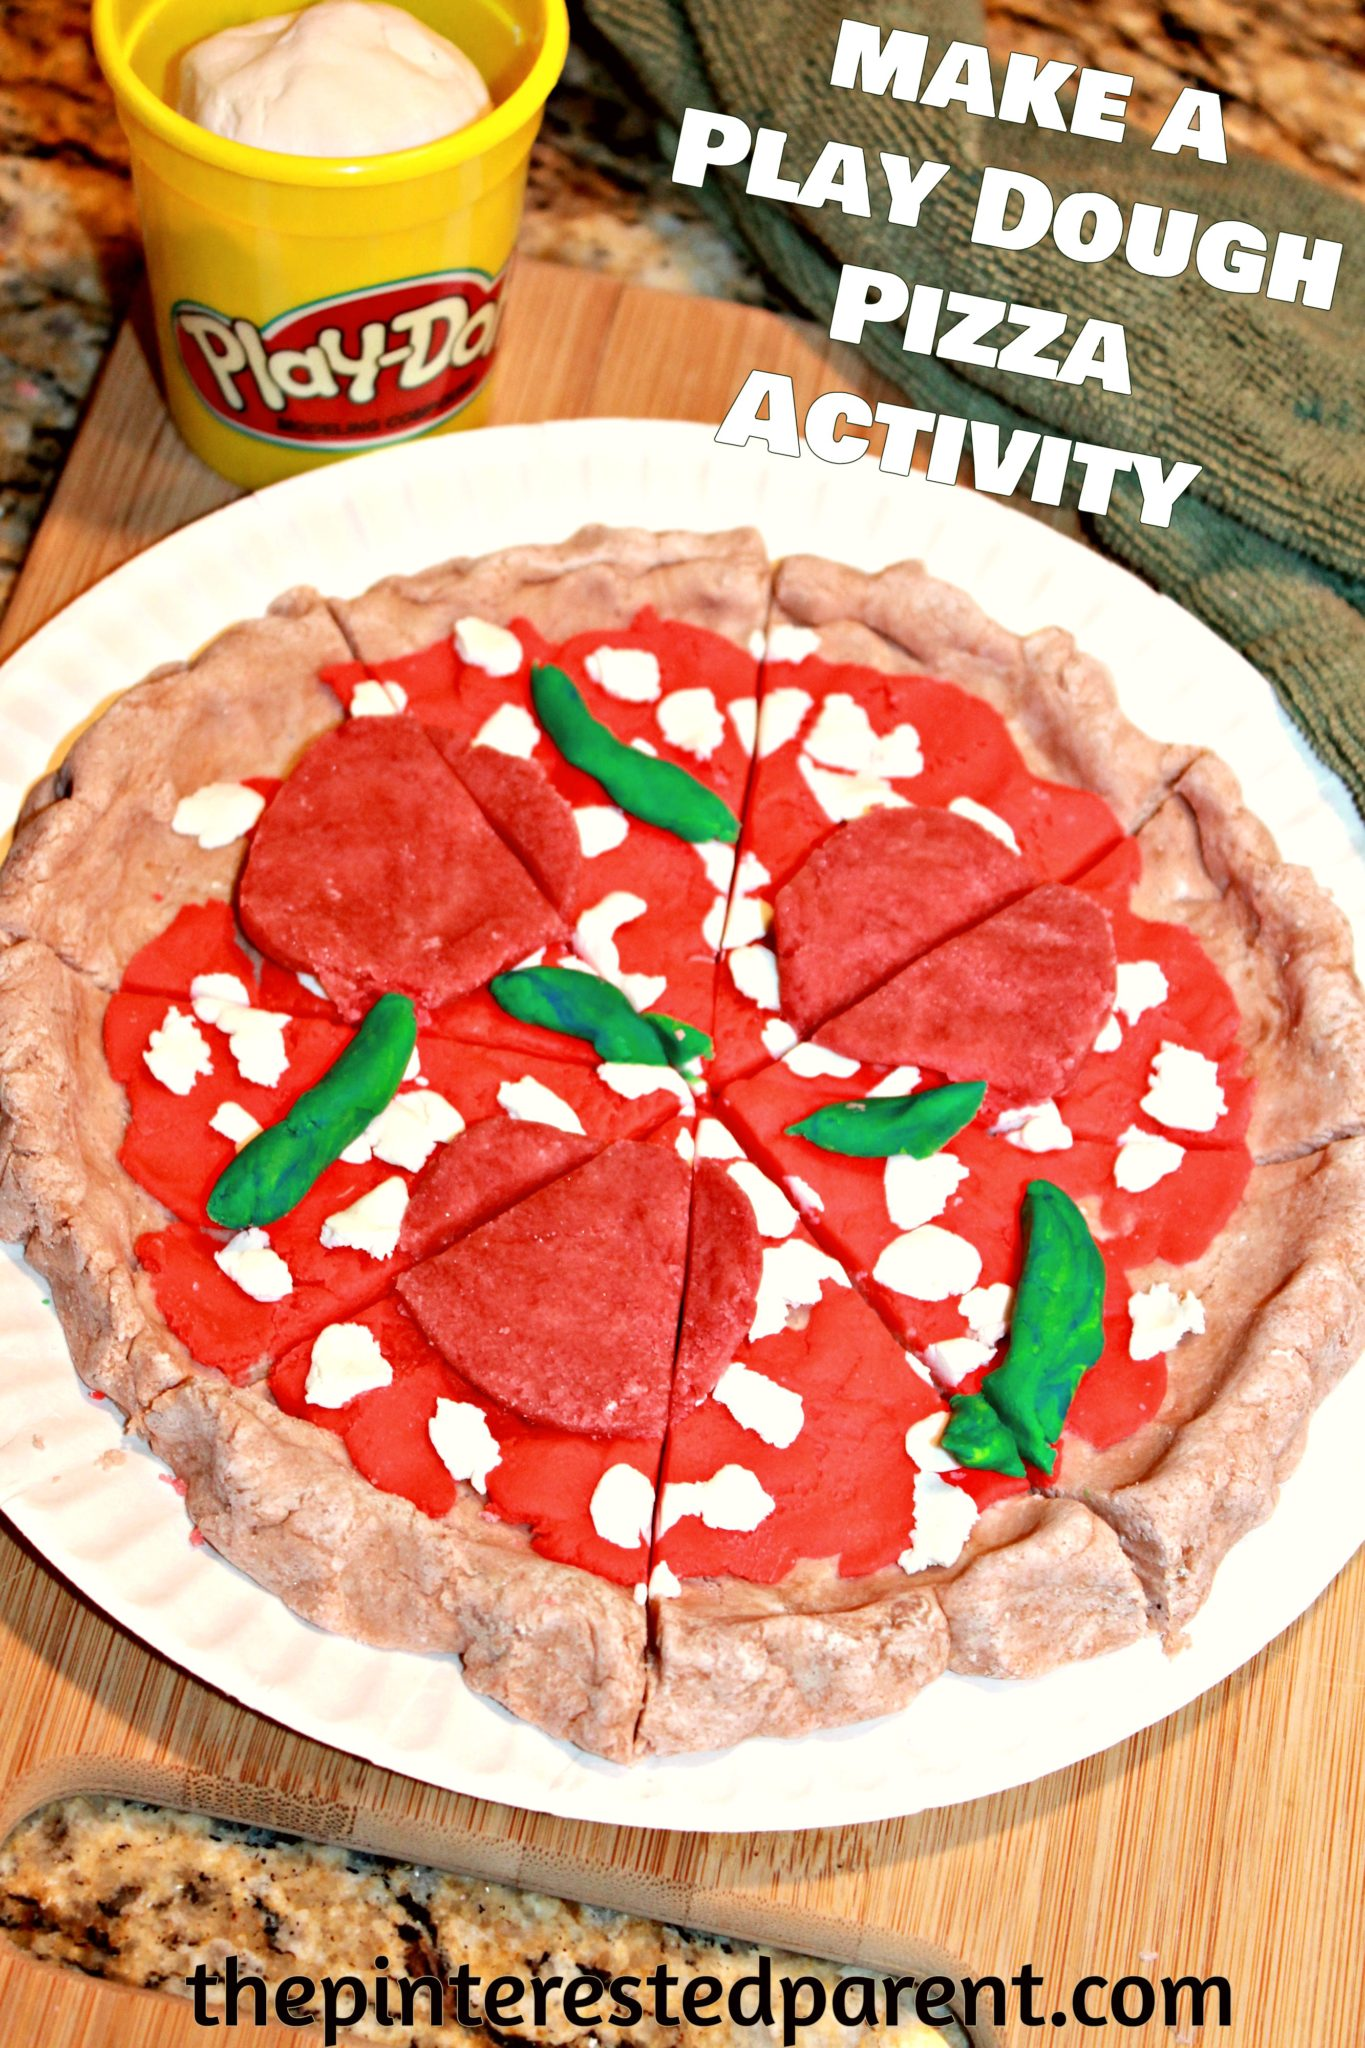 pizza making play dough activity the pinterested parent. Black Bedroom Furniture Sets. Home Design Ideas